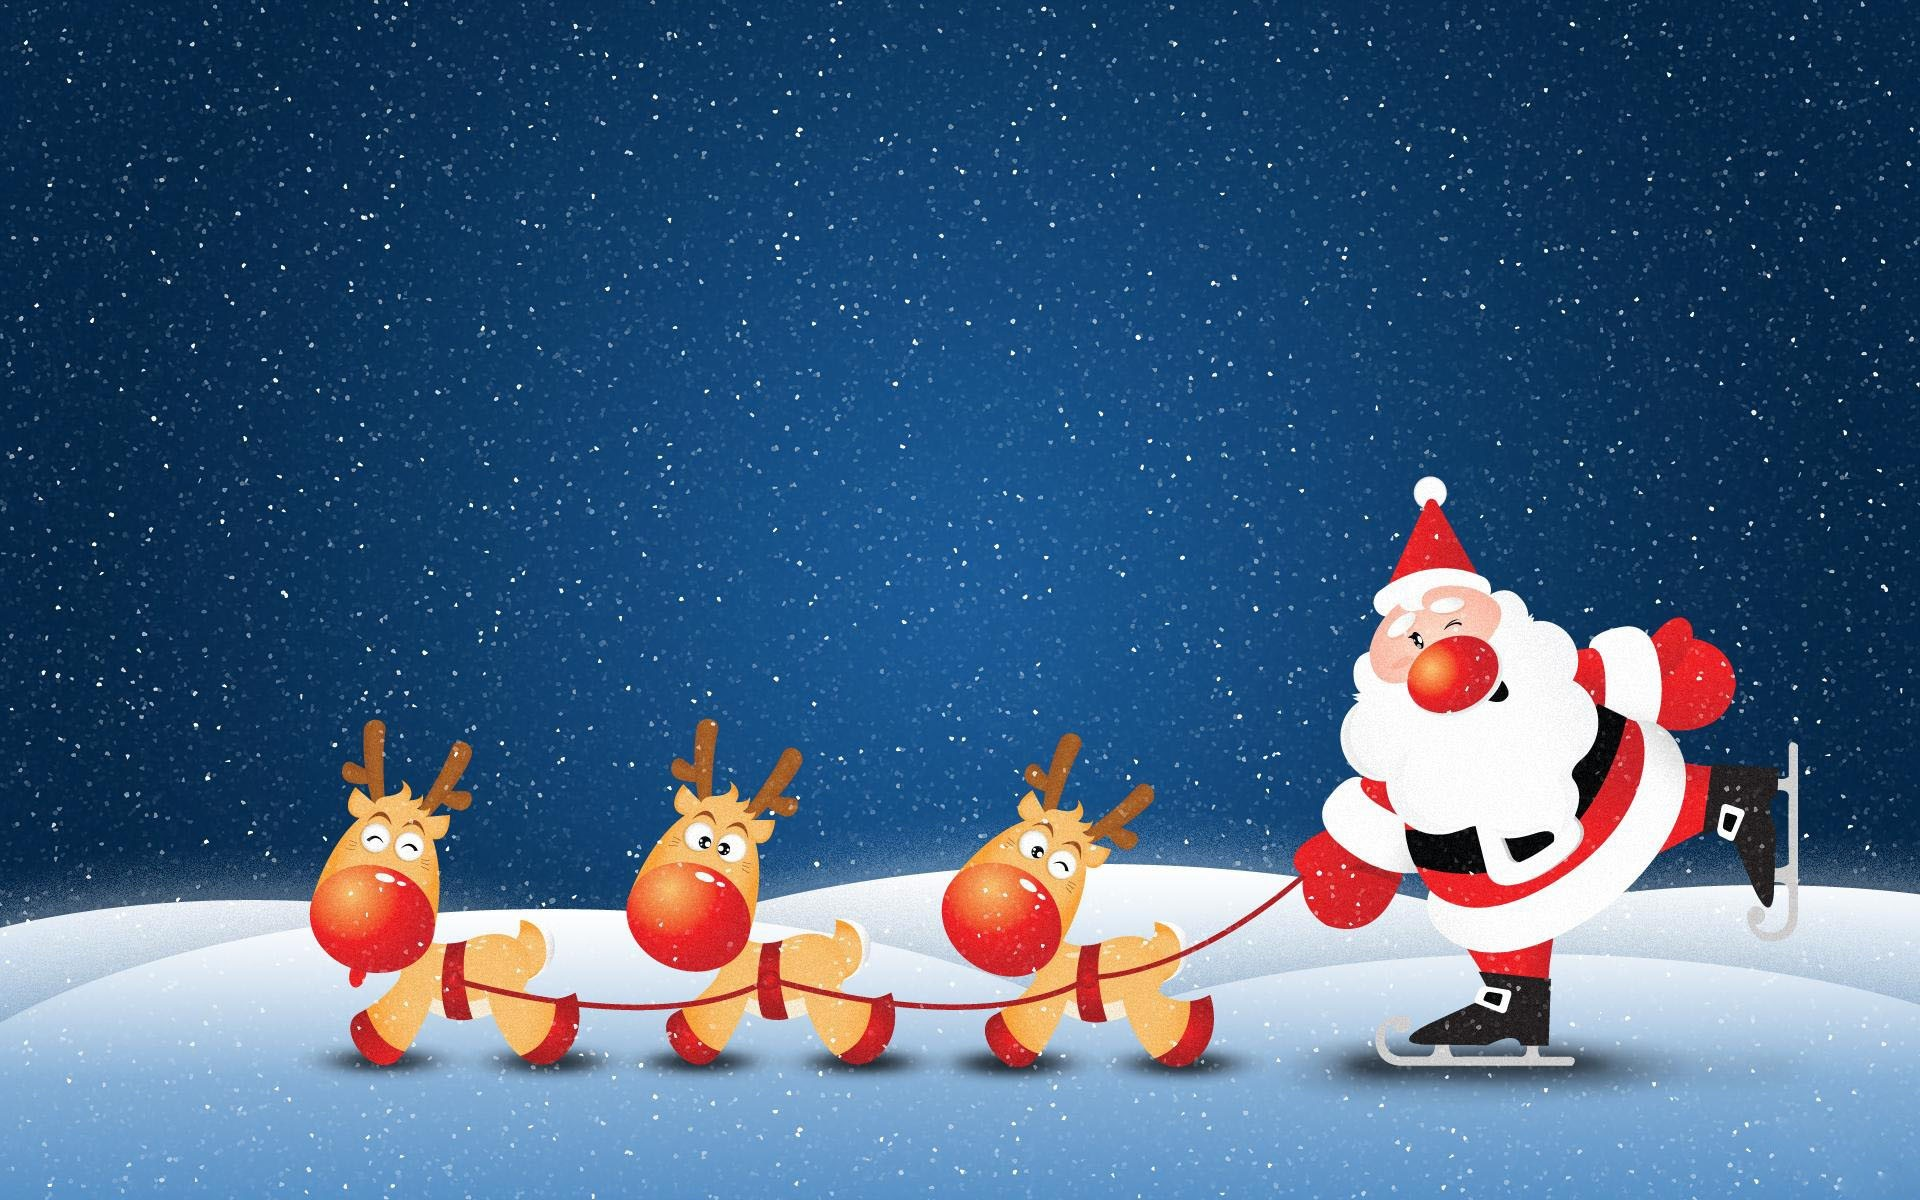 Christmas santa claus clipart daily pics update hd.